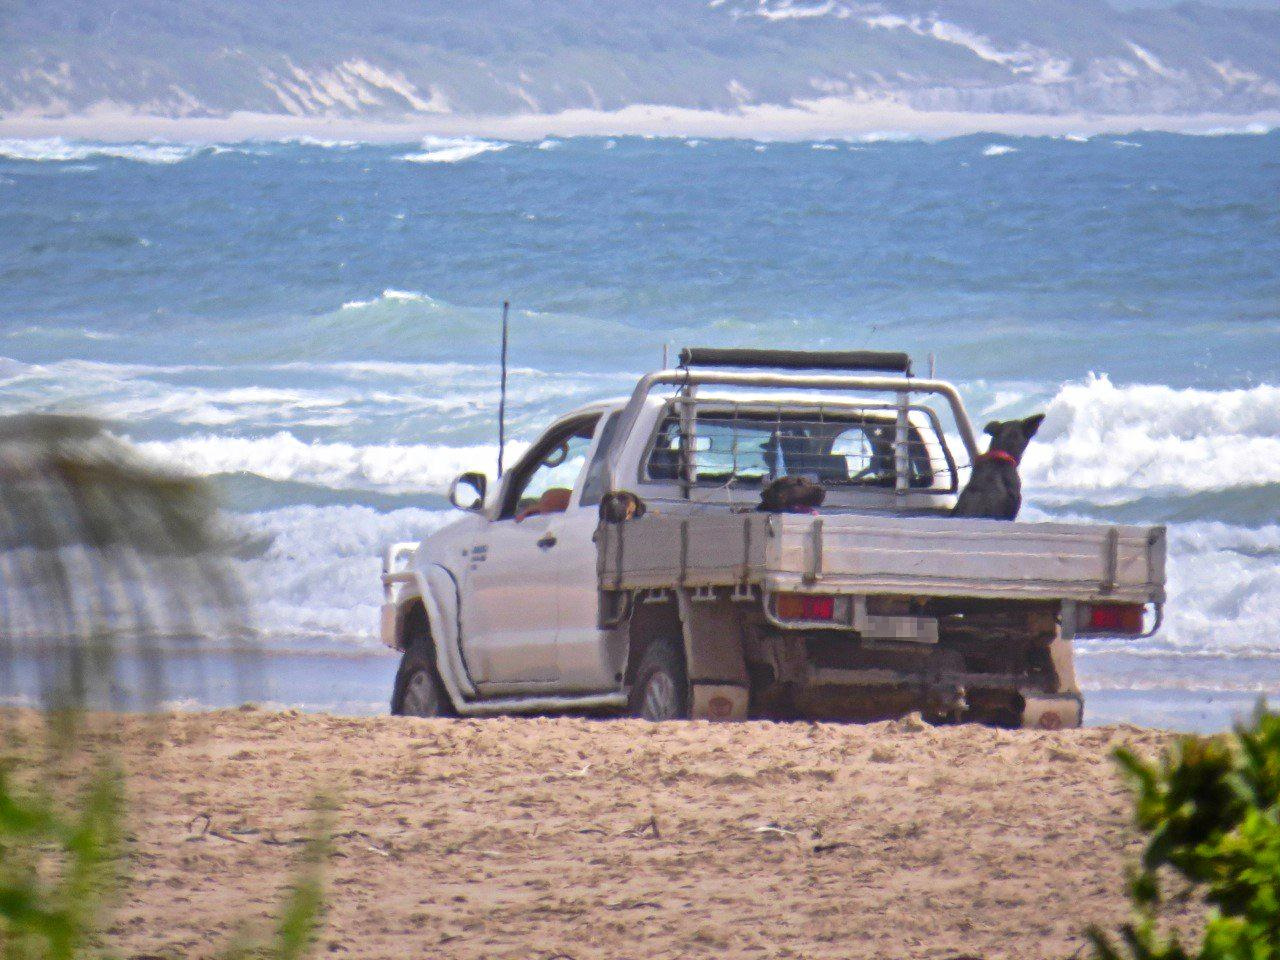 Drivers are being warned to stay off the dunes as big seas hit the Coast this weekend.